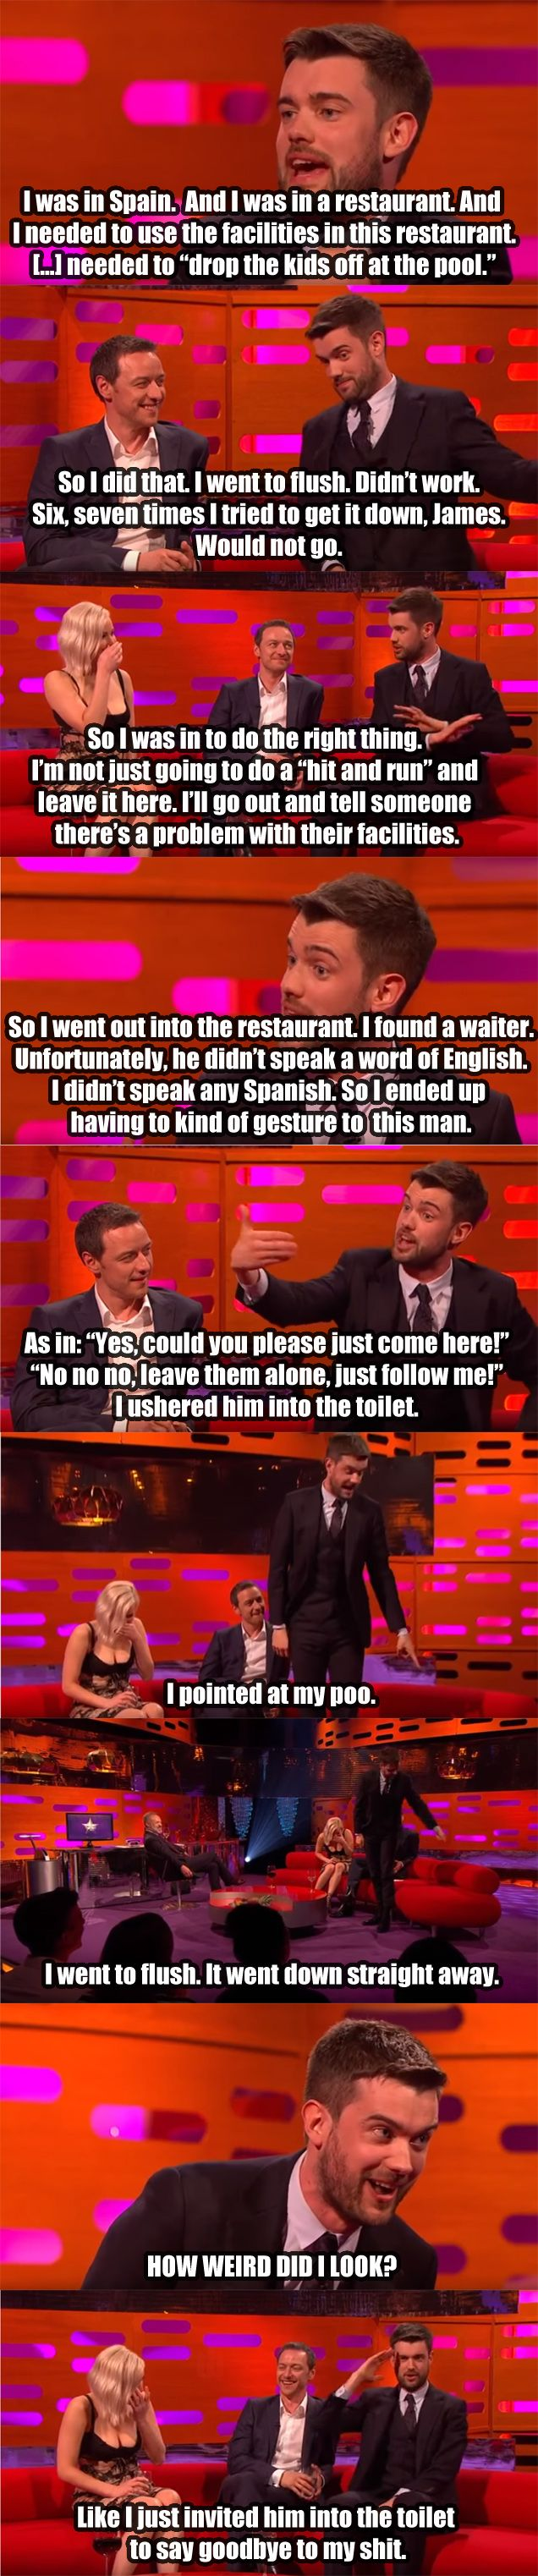 The best language barrier story - more at http://www.thelolempire.com